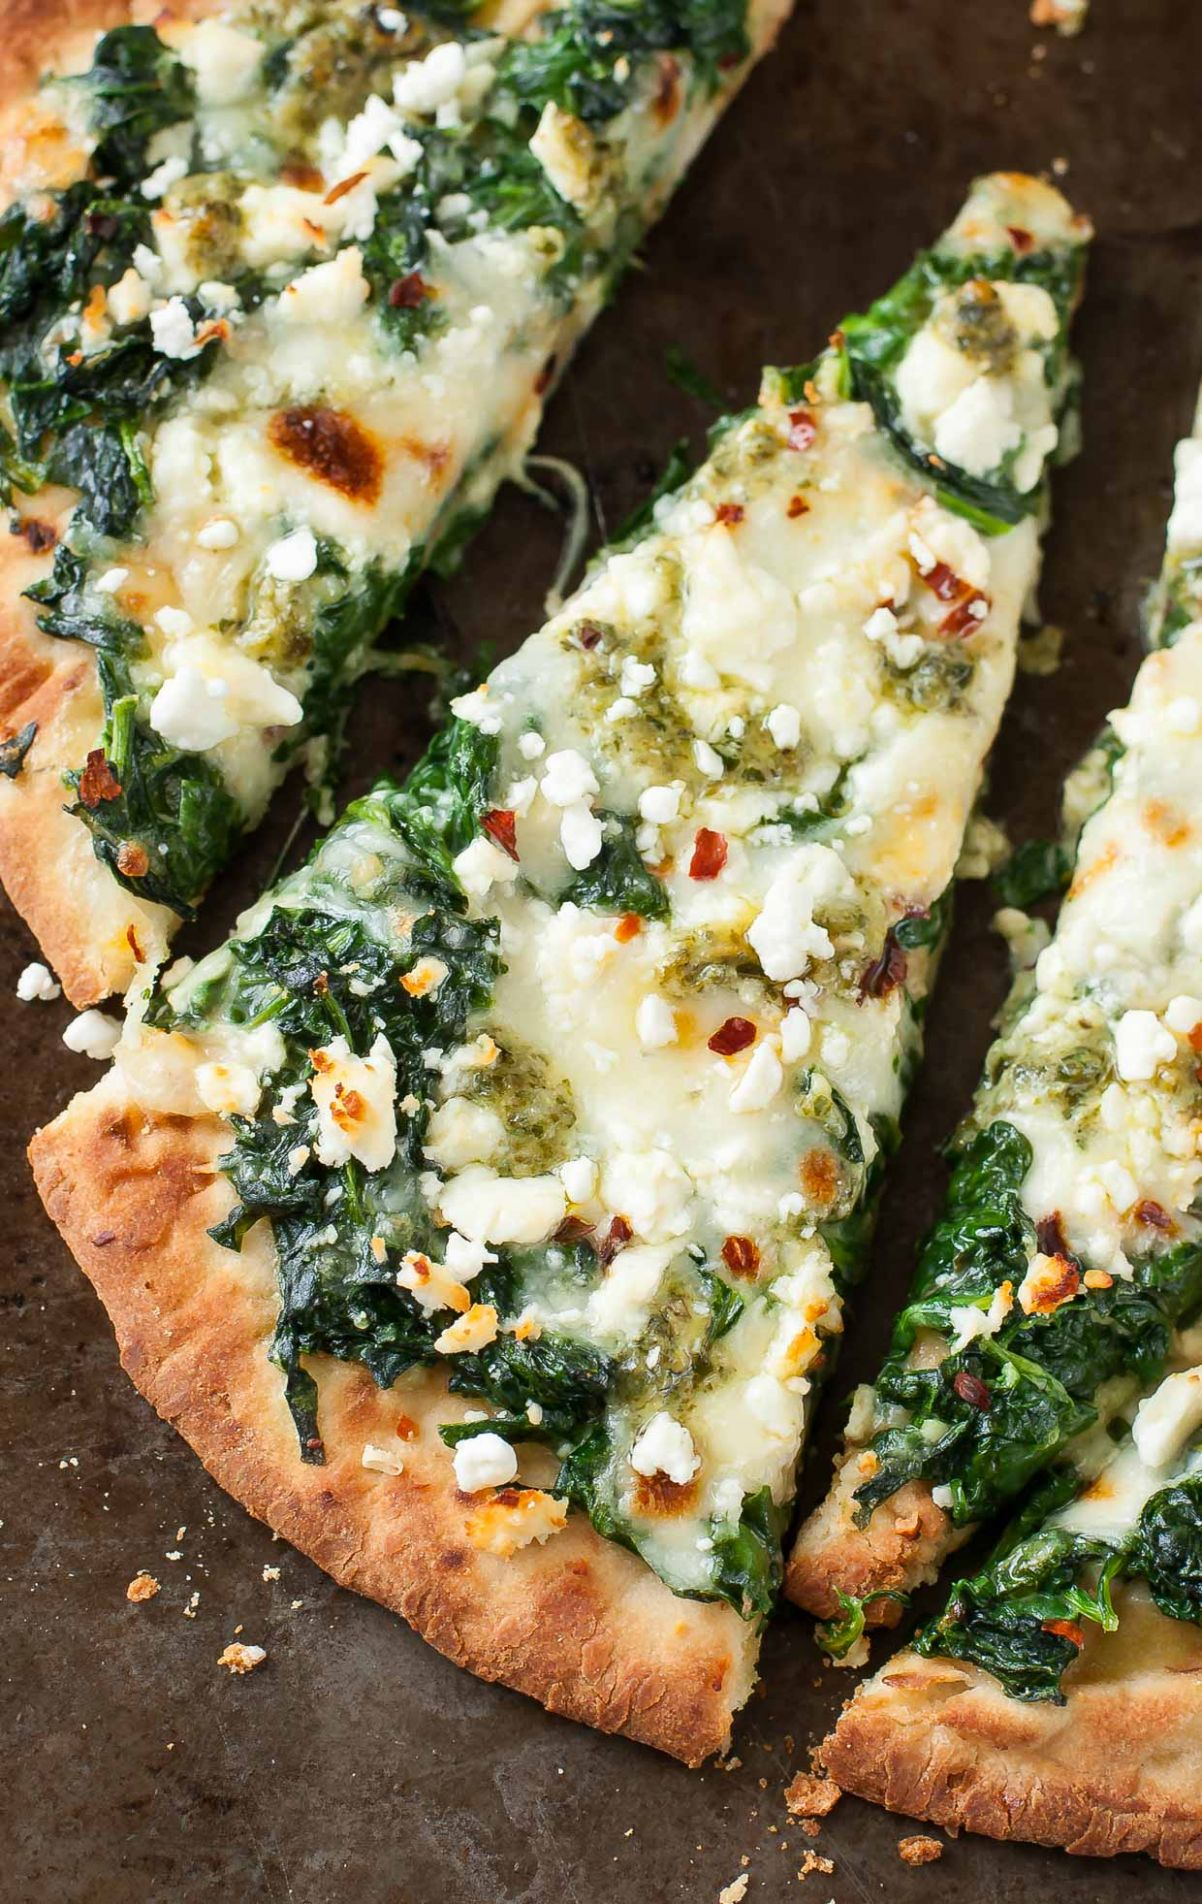 Three Cheese Pesto Spinach Flatbread Pizza - Recipes Pizza With Spinach